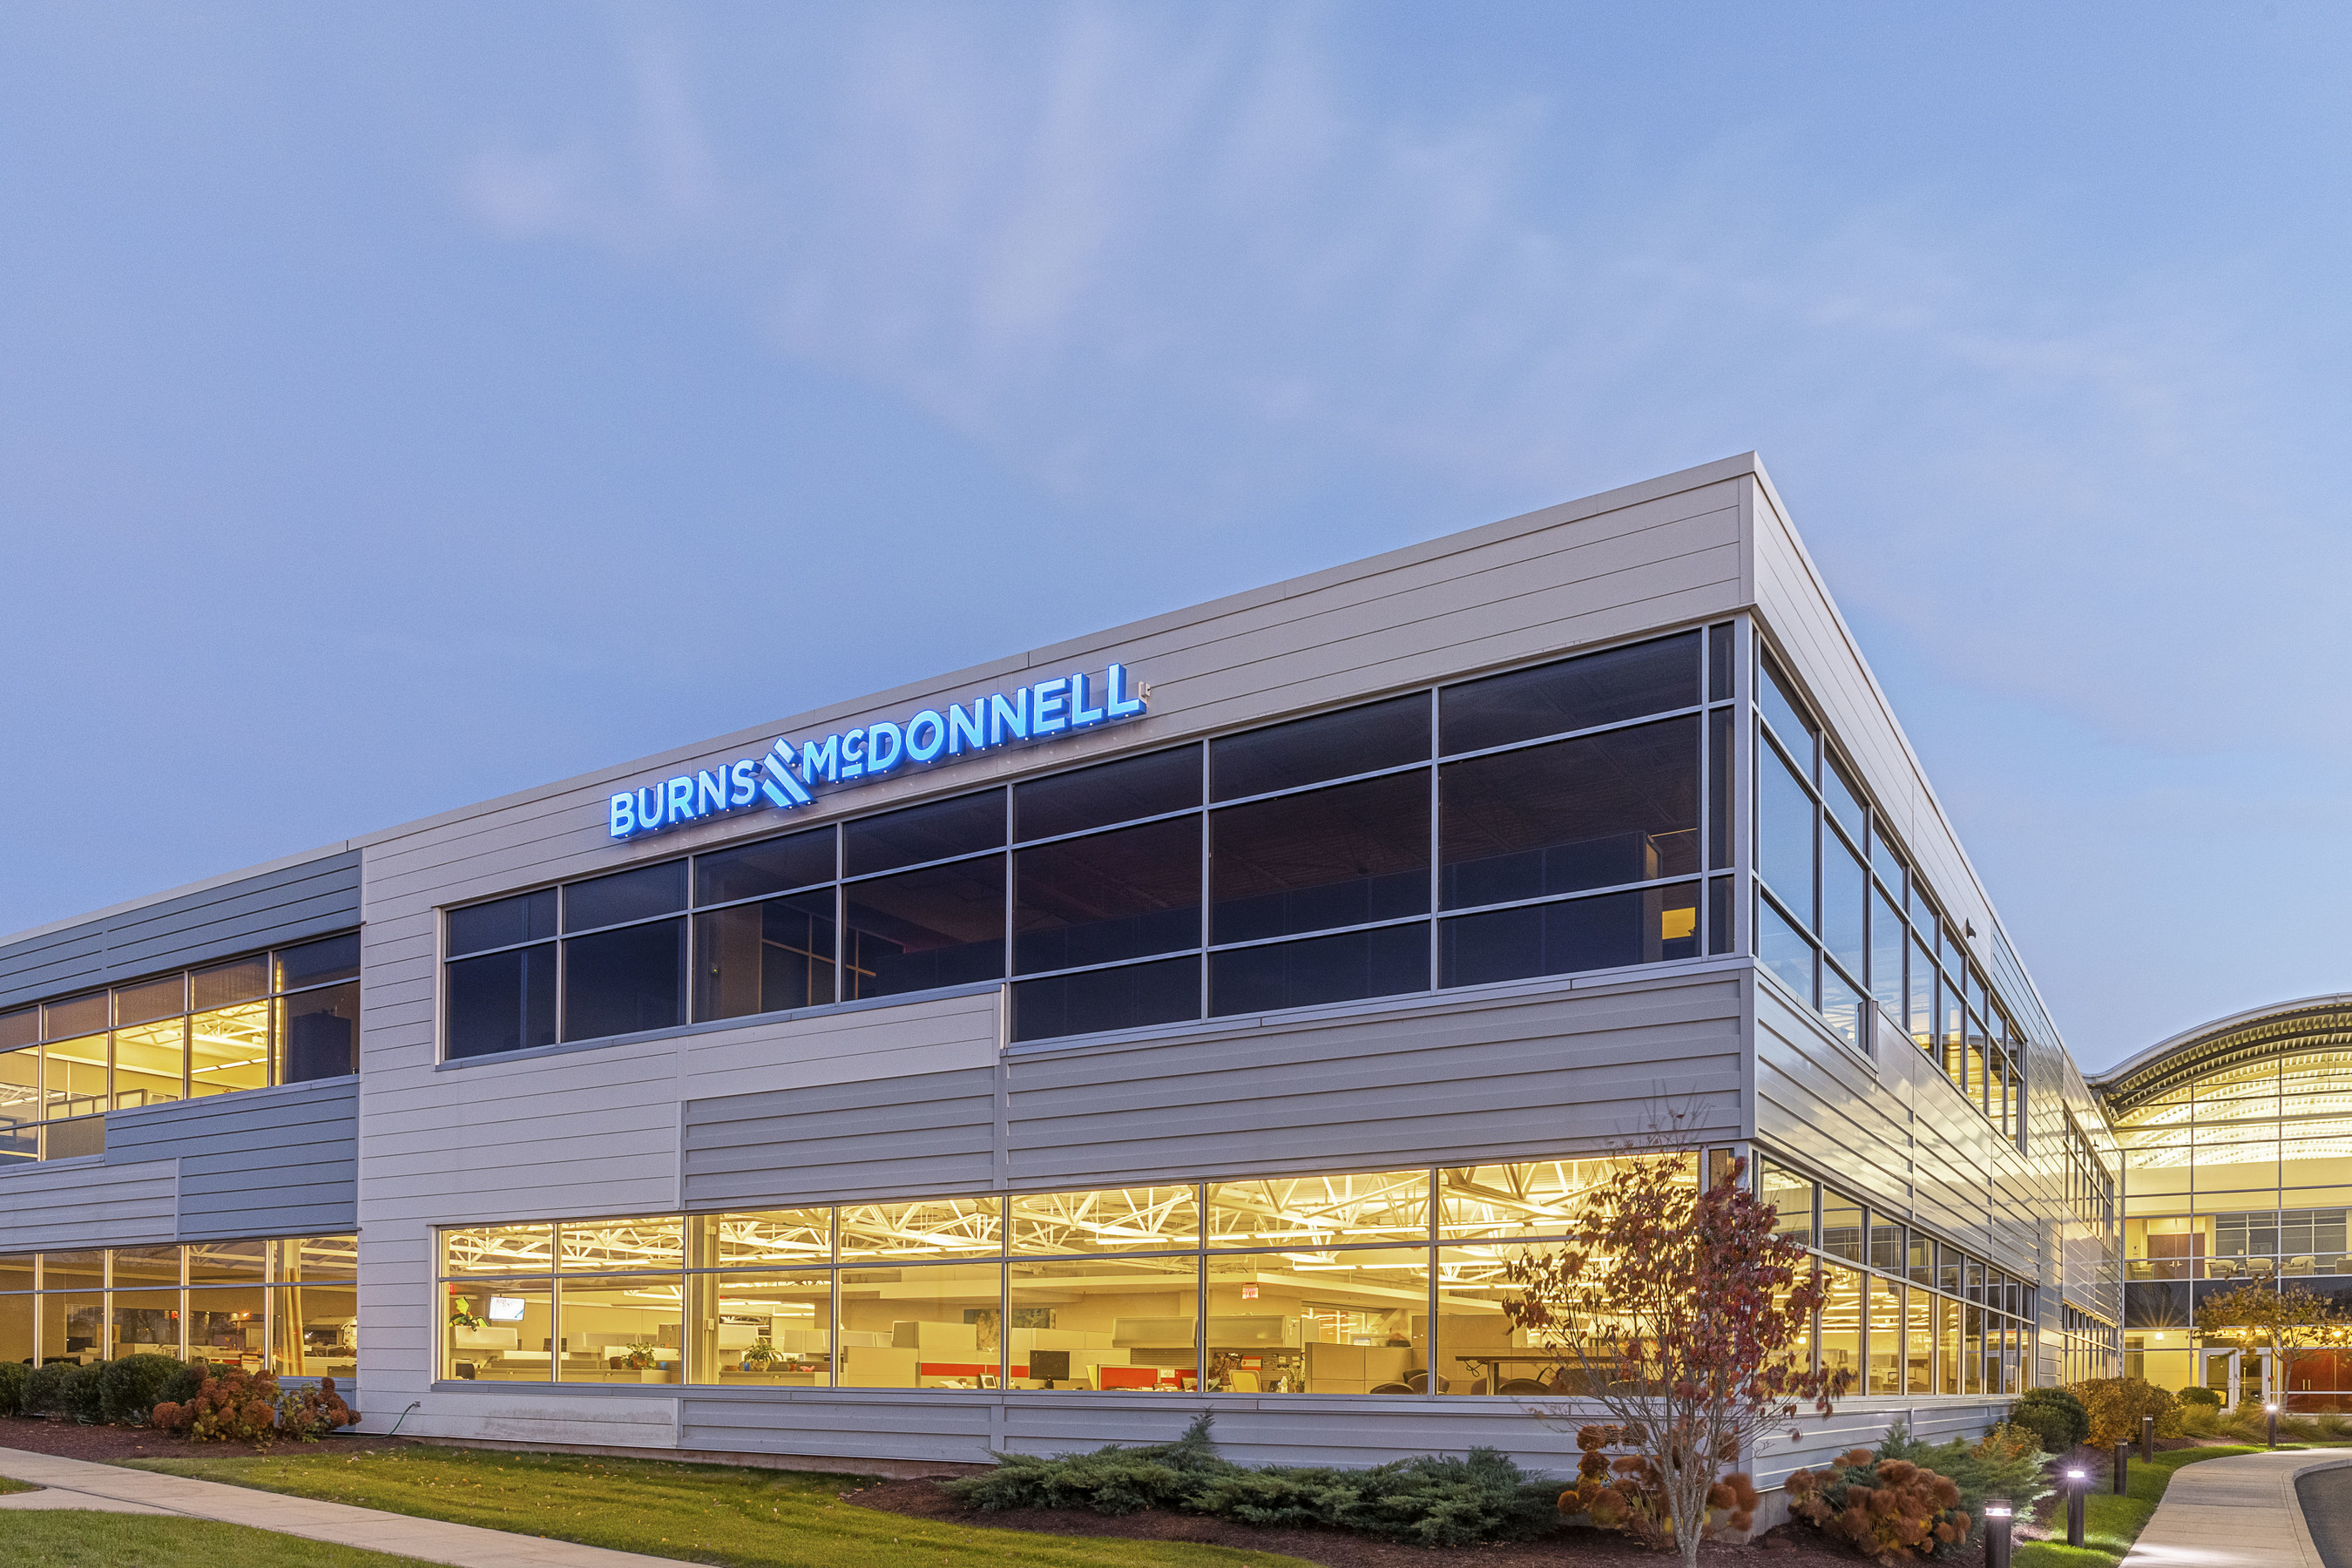 Home to more than 120 employee-owners, the Burns & McDonnell office in Wallingford, Conn., is among the firm's fastest growing offices.